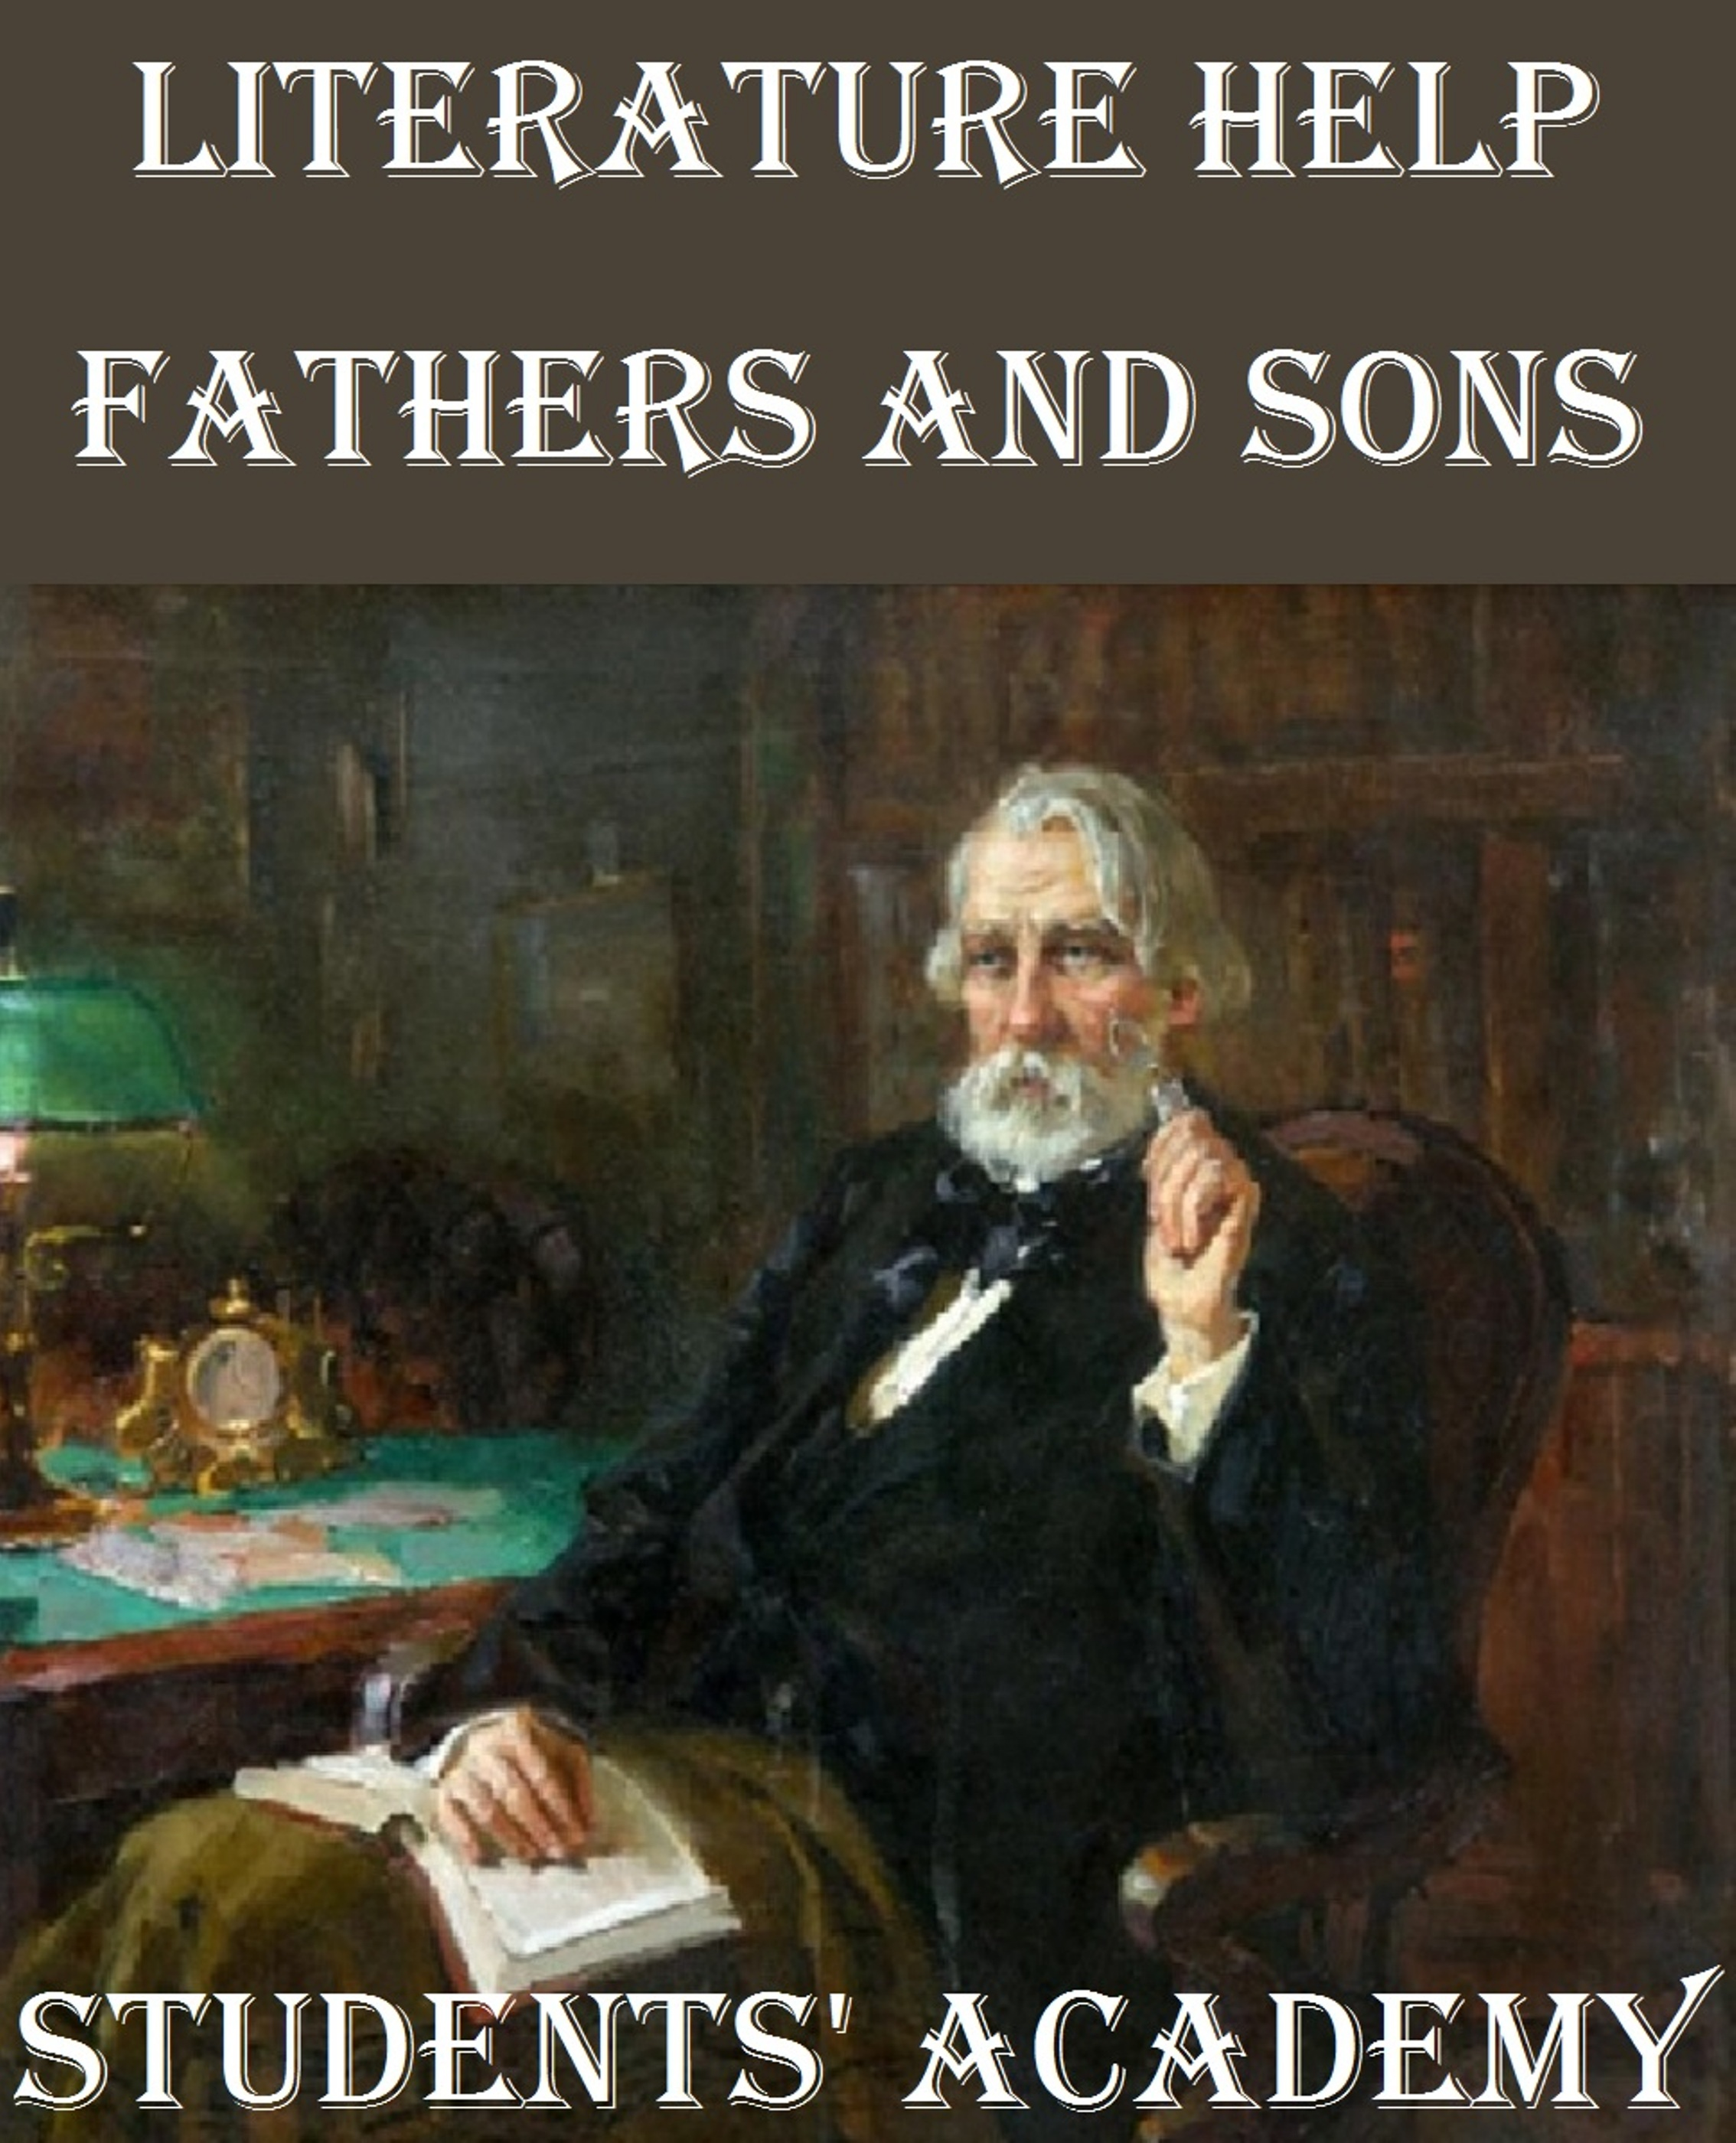 a literary analysis of nihilism in turgenovs fathers and sons Nihilism is the belief that all values are baseless and that nothing can be known or it only became popularized, however, after its appearance in ivan turgenev's novel fathers and sons (1862) where nihilism, in fact, can be understood in several different ways.